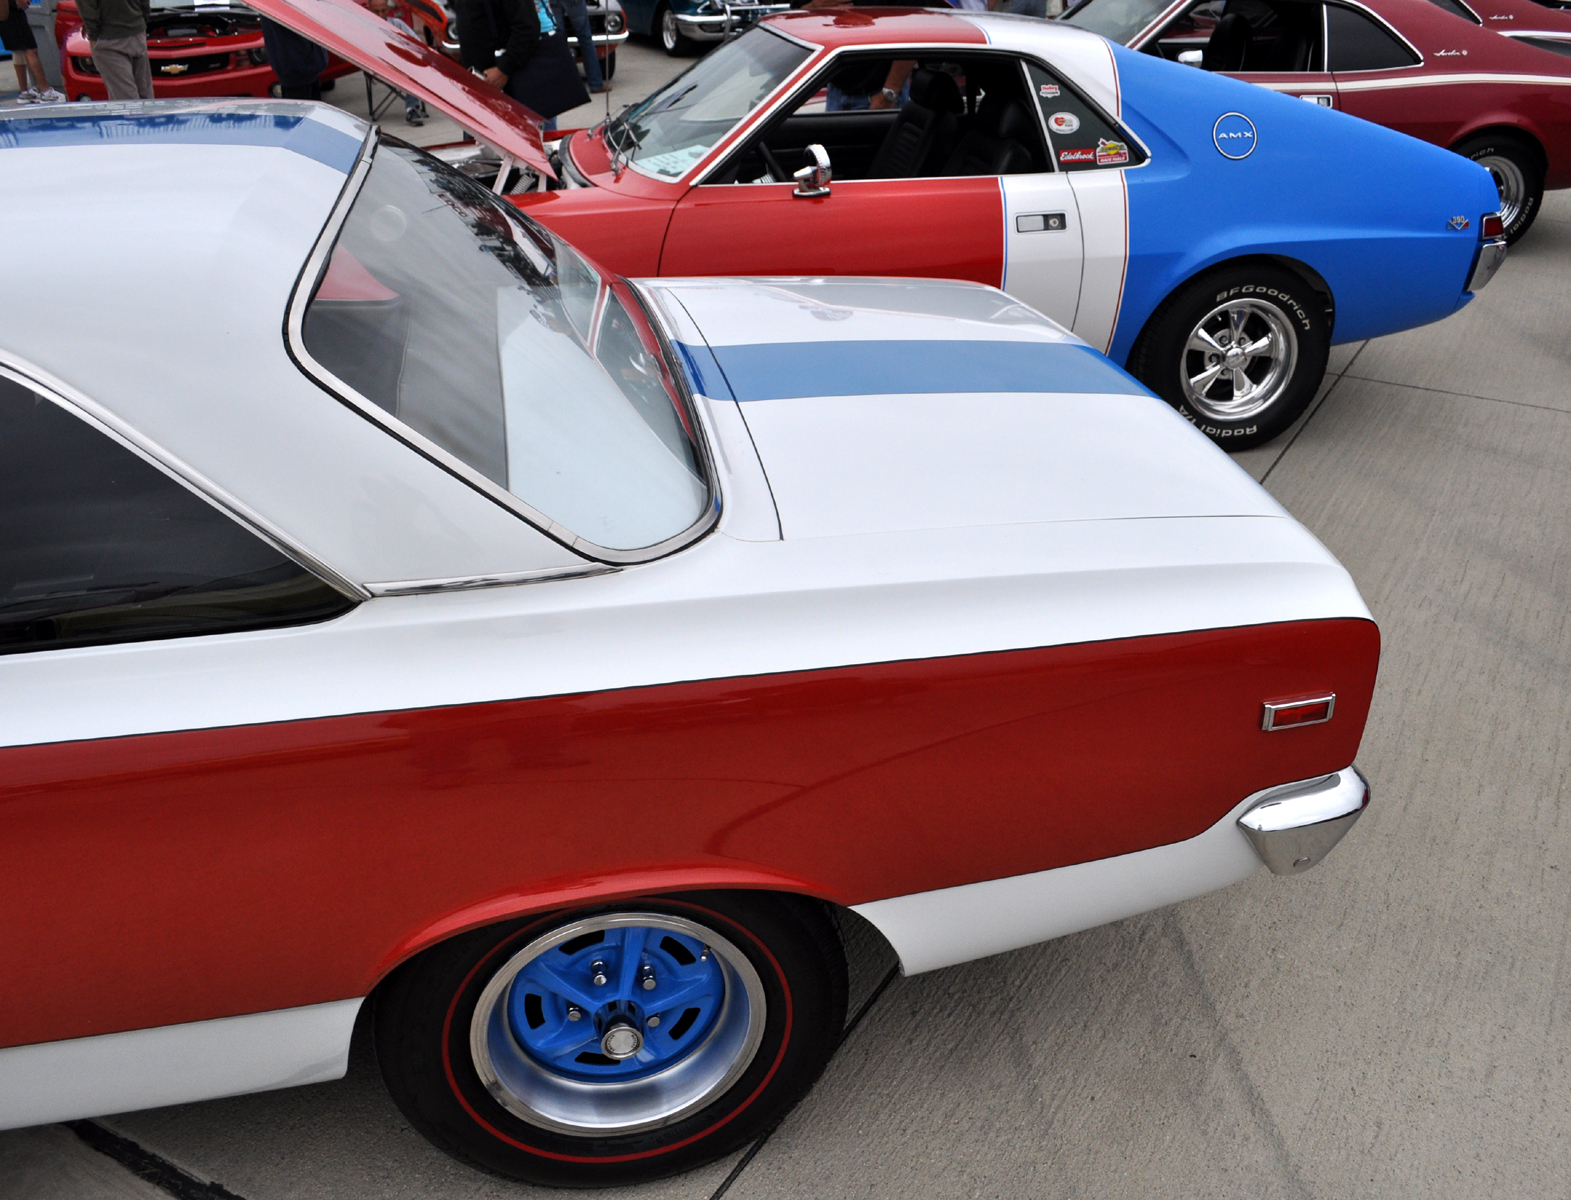 Just A Car Guy: Very rare AMC muscle cars together, and that is ...